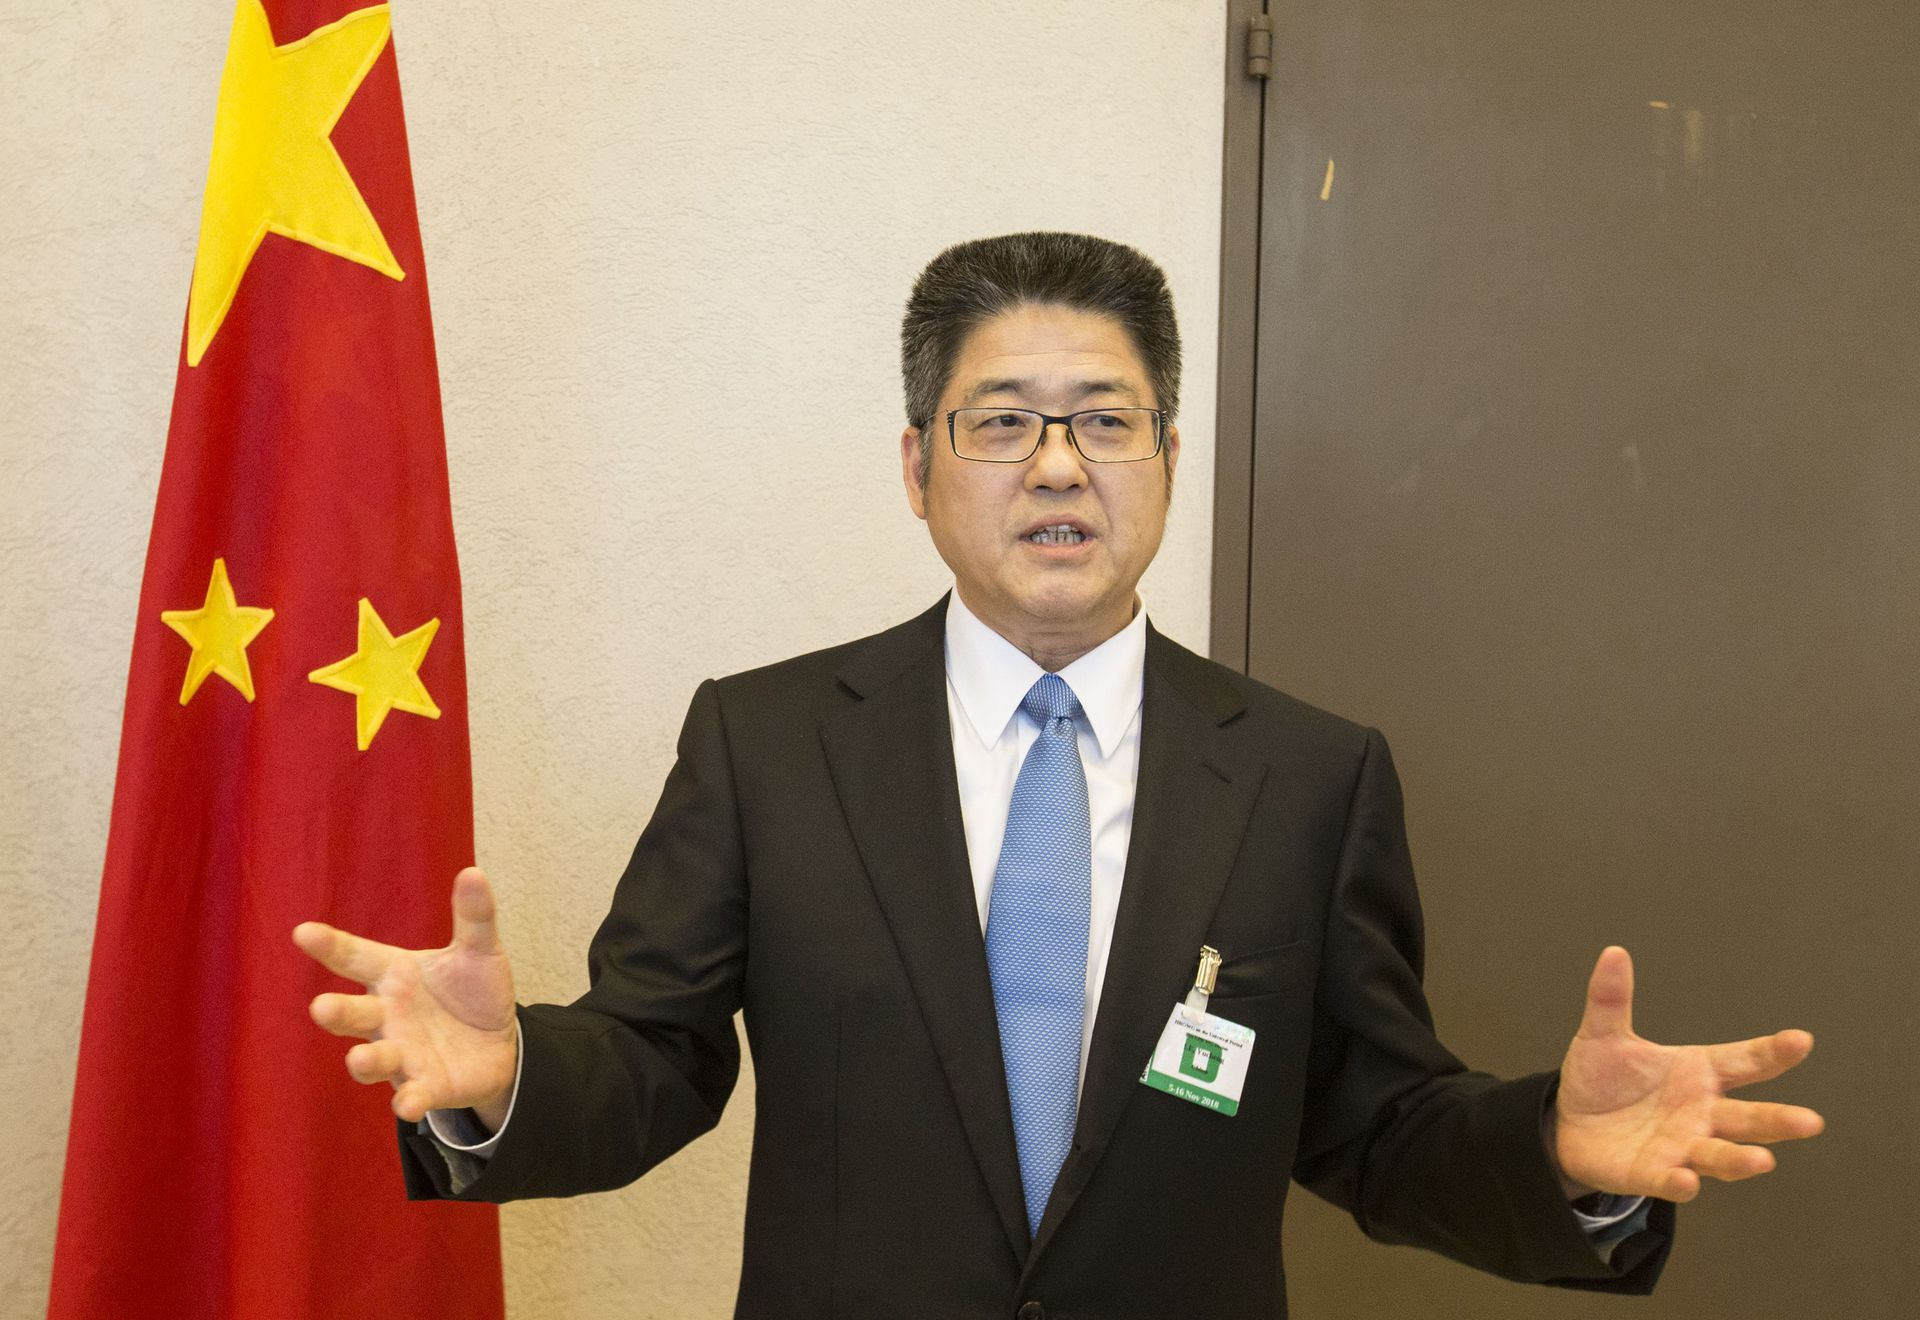 On November 2018, 11, at the United Nations Palais des Nations in Geneva, Switzerland, the head of the Chinese delegation and Vice Foreign Minister Le Yucheng, who attended the third round of the Human Rights Review Conference of the United Nations Human Rights Council, was interviewed by reporters. (Xinhua News Agency)